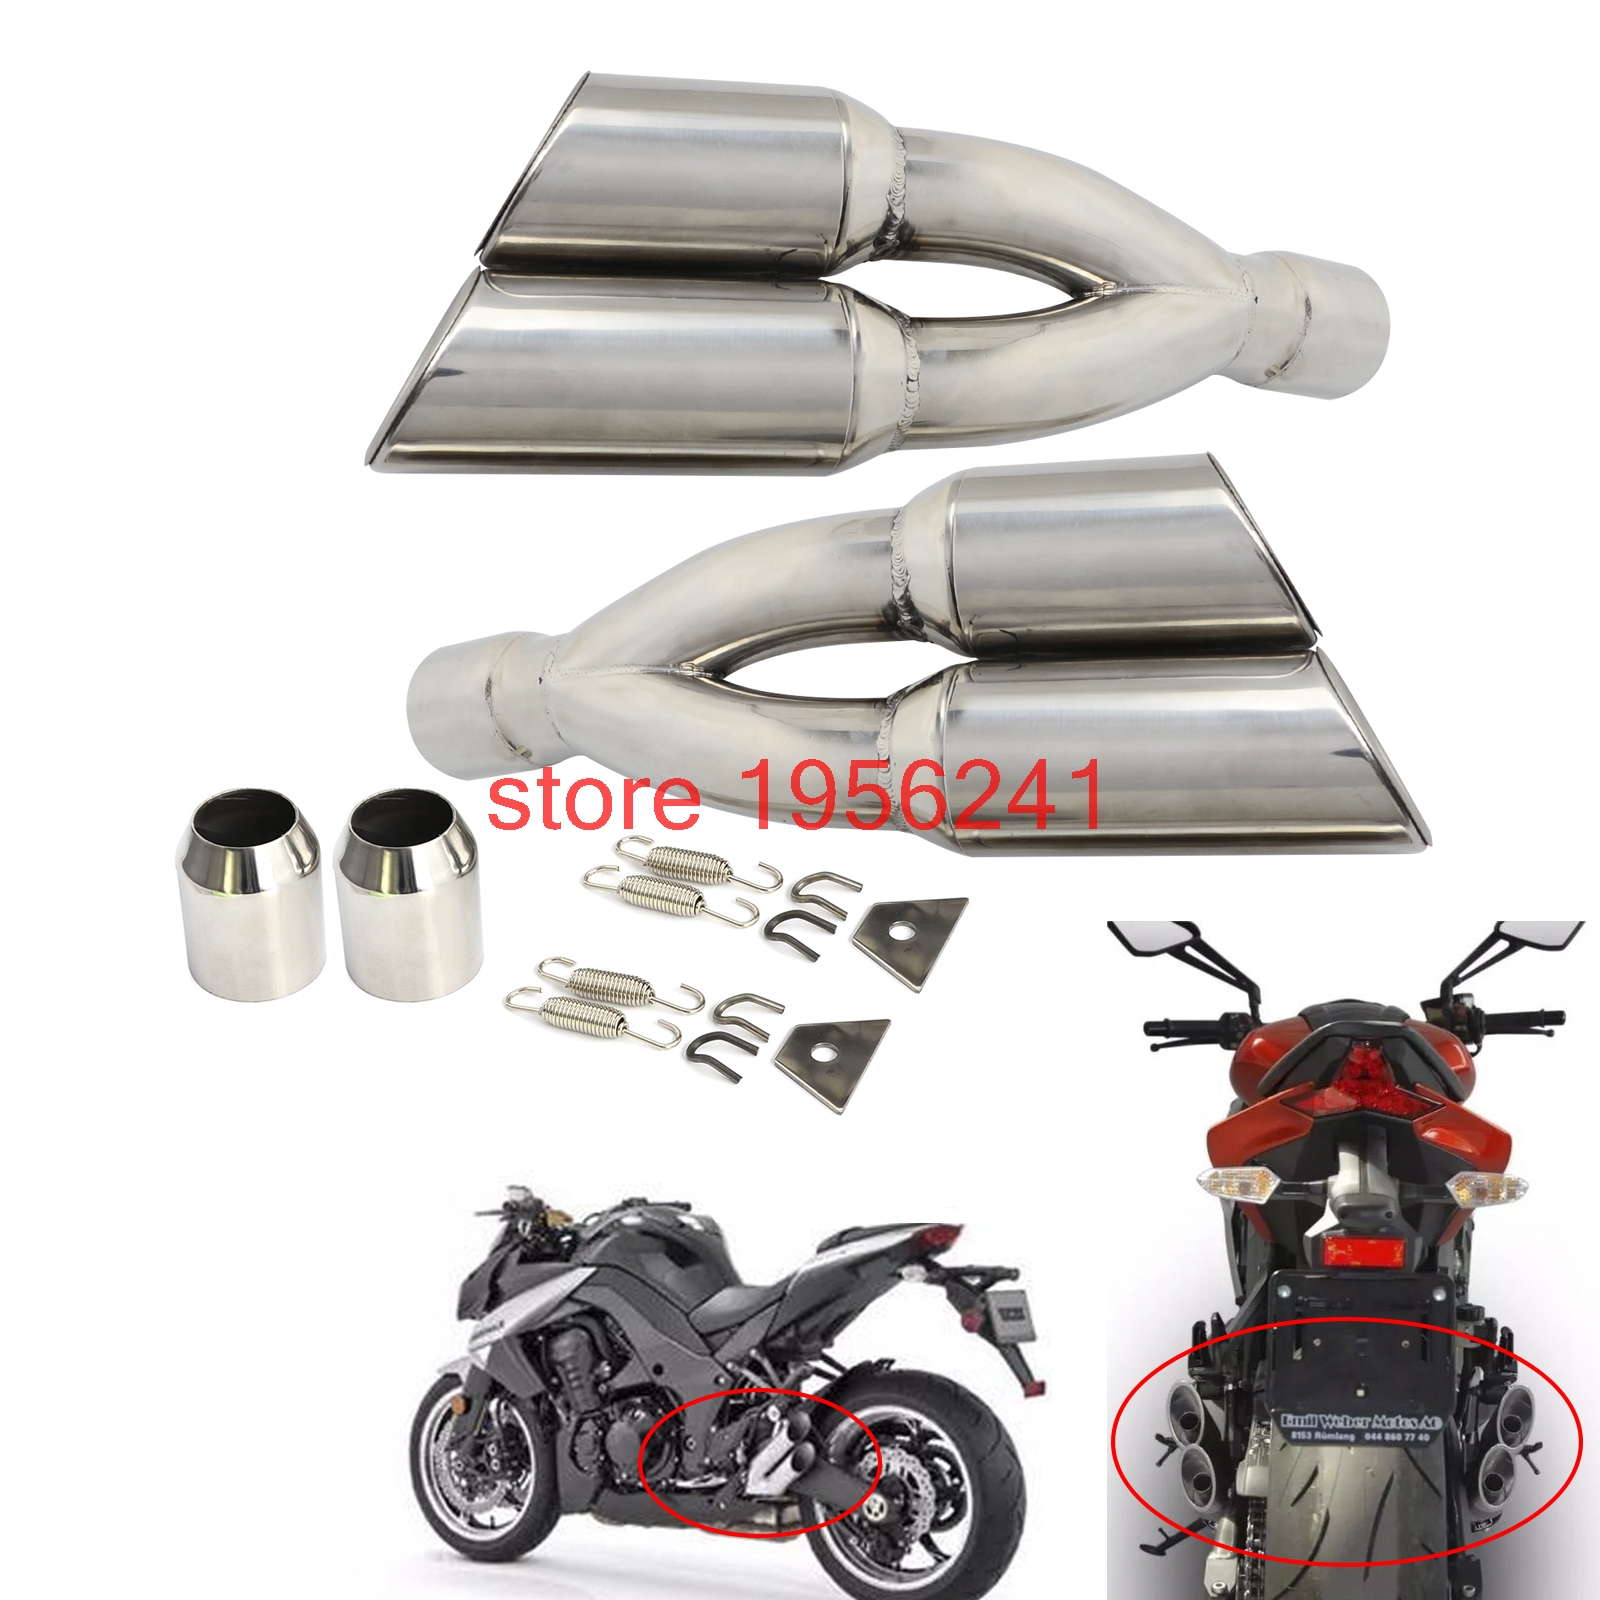 38-51MM Slip-On Universal Dual Exhaust Muffler Vent Pipe Slip On Motorcycle Dirt Bike Street Bike Scooter ATV Quad And More universal motorcycle chain tensioner bolt on roller chopper atv dirt street bike for suzuki rg 125 vespa 150 vba t4 180ss all ye